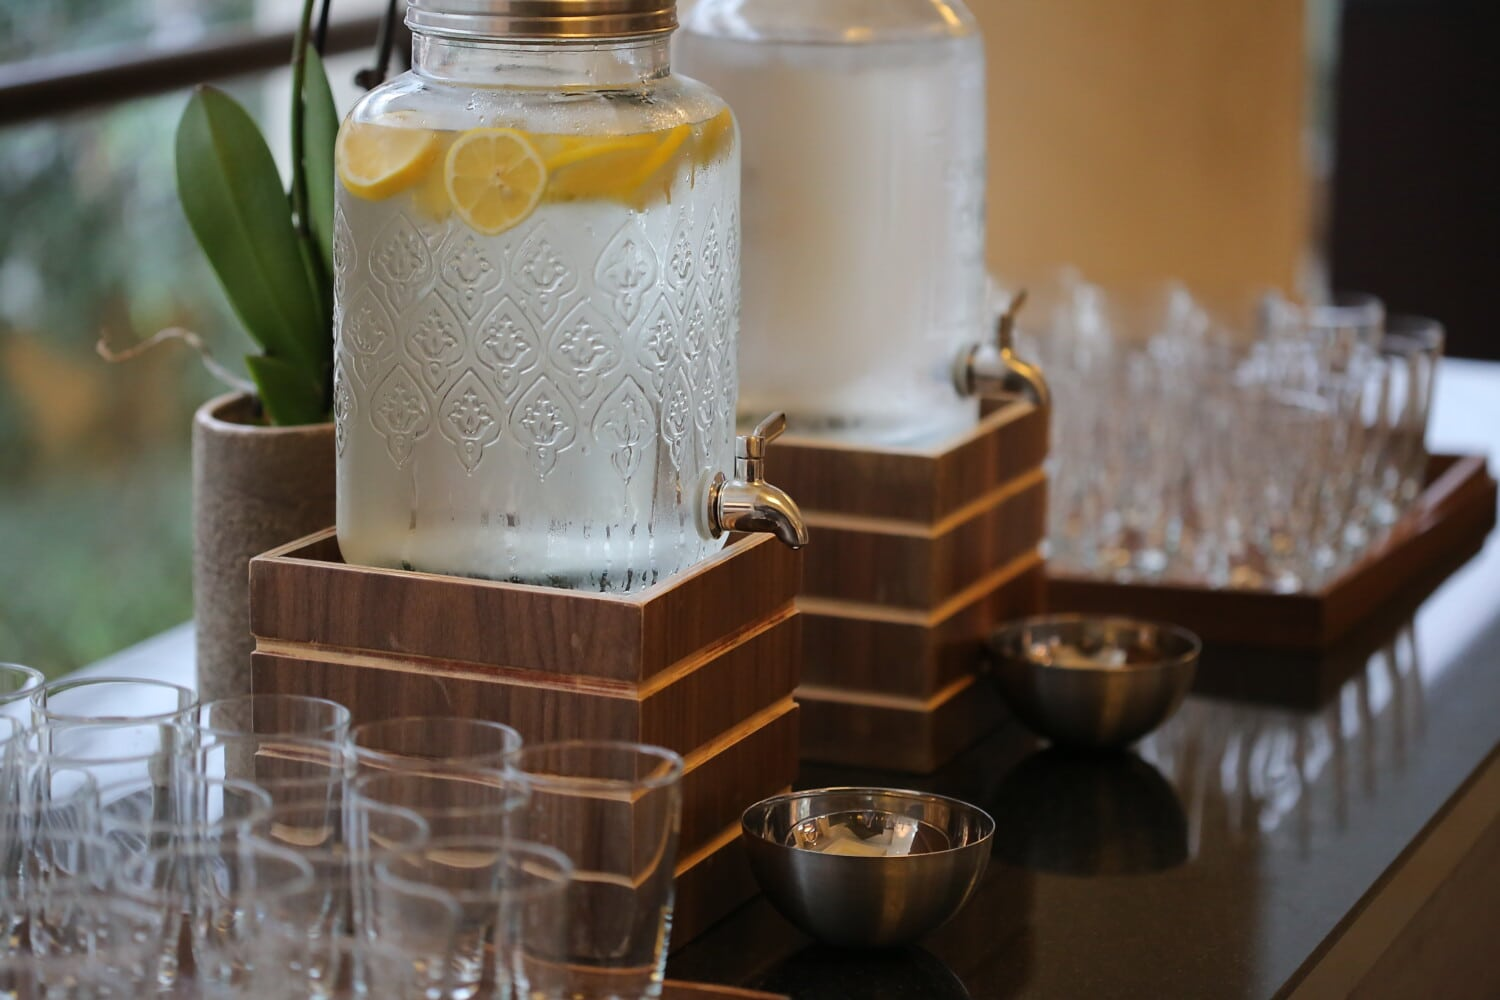 cold water, bottles, lemonade, ice water, ice, cafeteria, container, candle, treatment, luxury